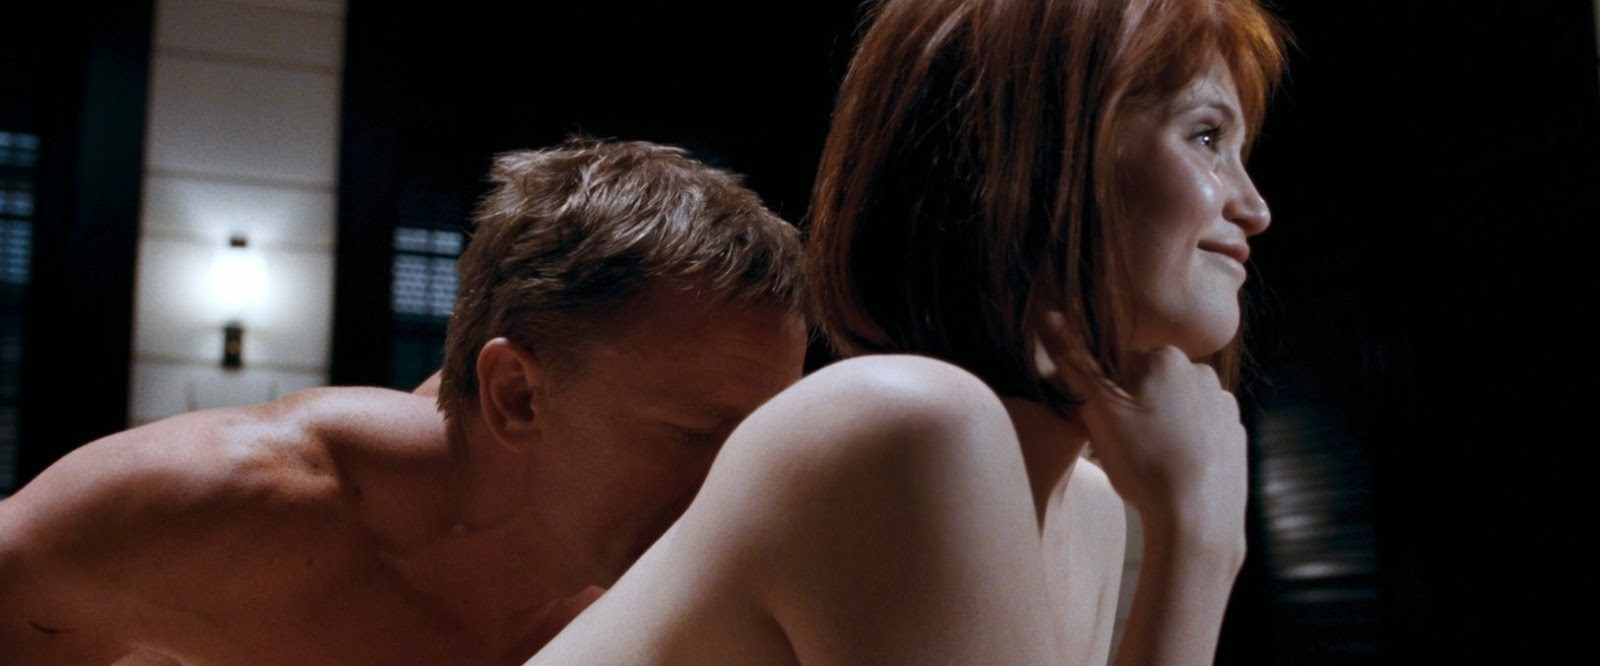 Daniel craig was lucky to have a sex scene with me